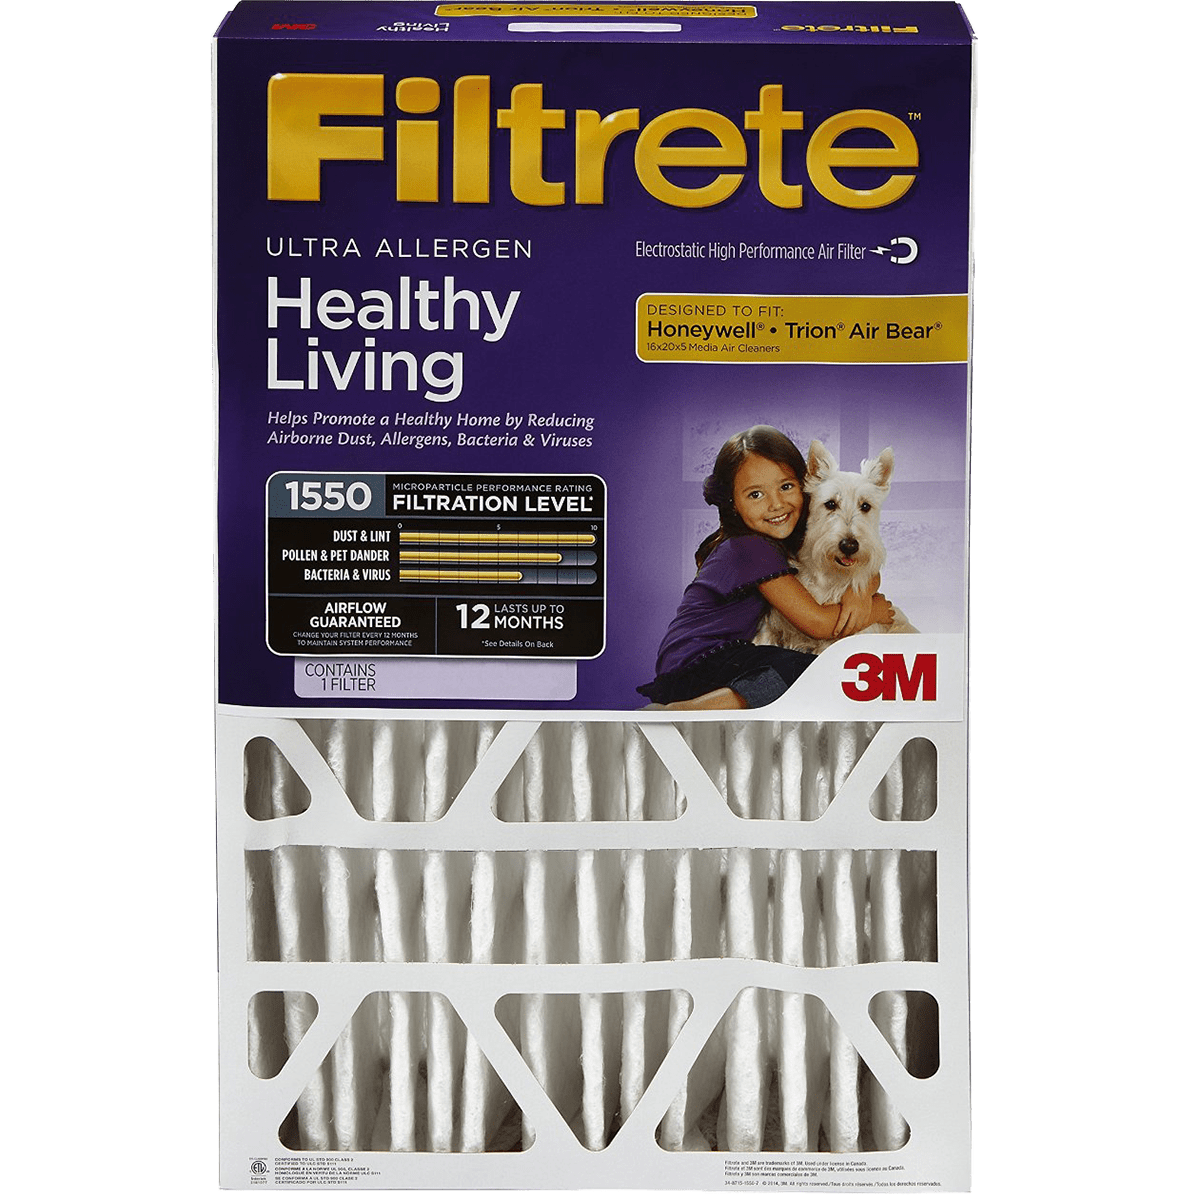 3m Filtrete Healthy Living 1550 Mpr 5-inch Ultra Allergen Reduction Filters